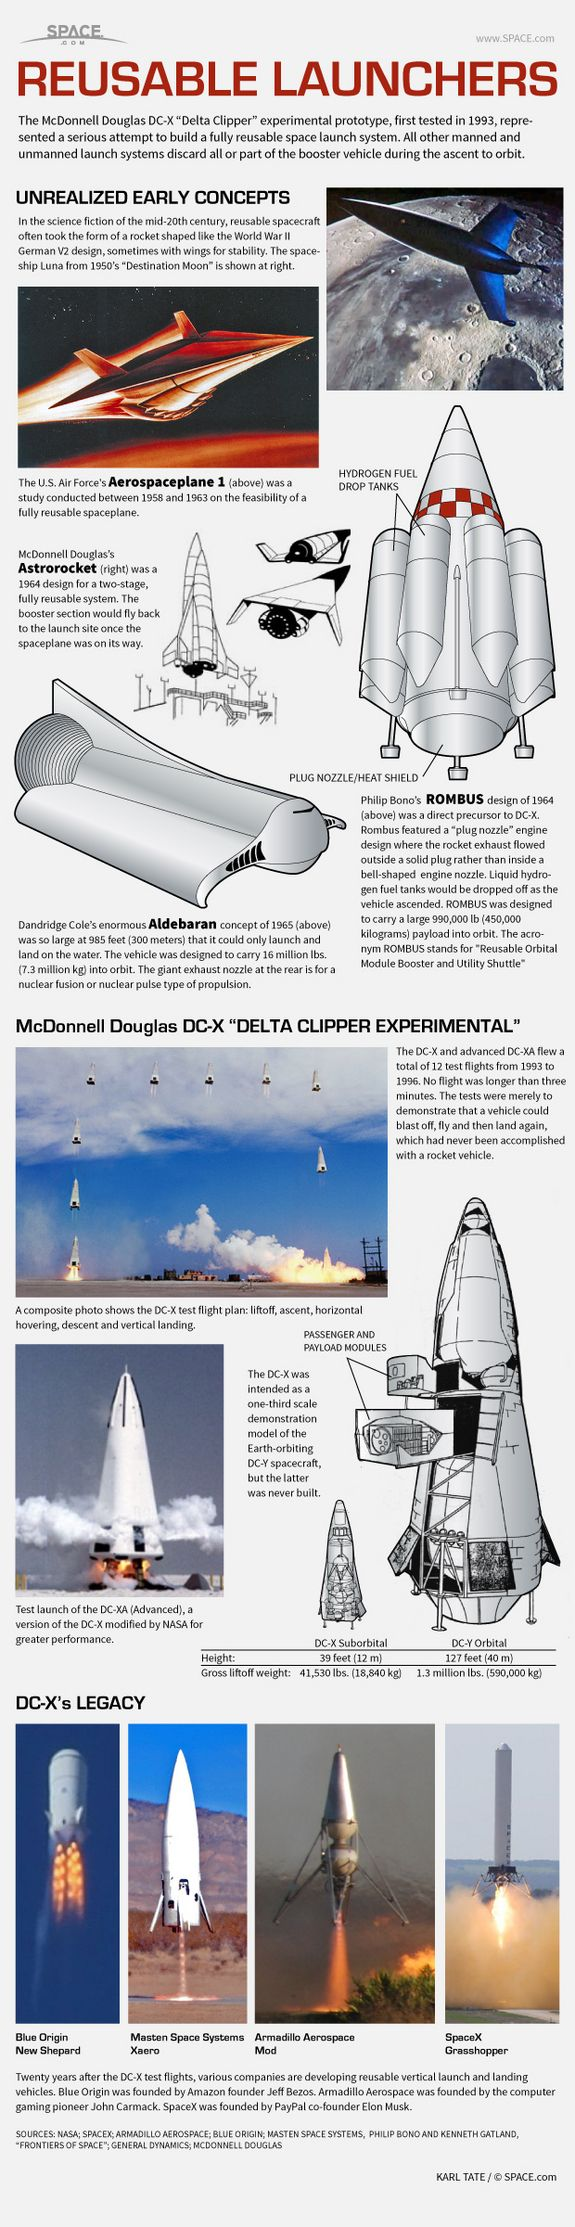 Reusable Rocket Launch Systems: How They Work (Infographic) space.com #space #spaceshuttle #spacecraft